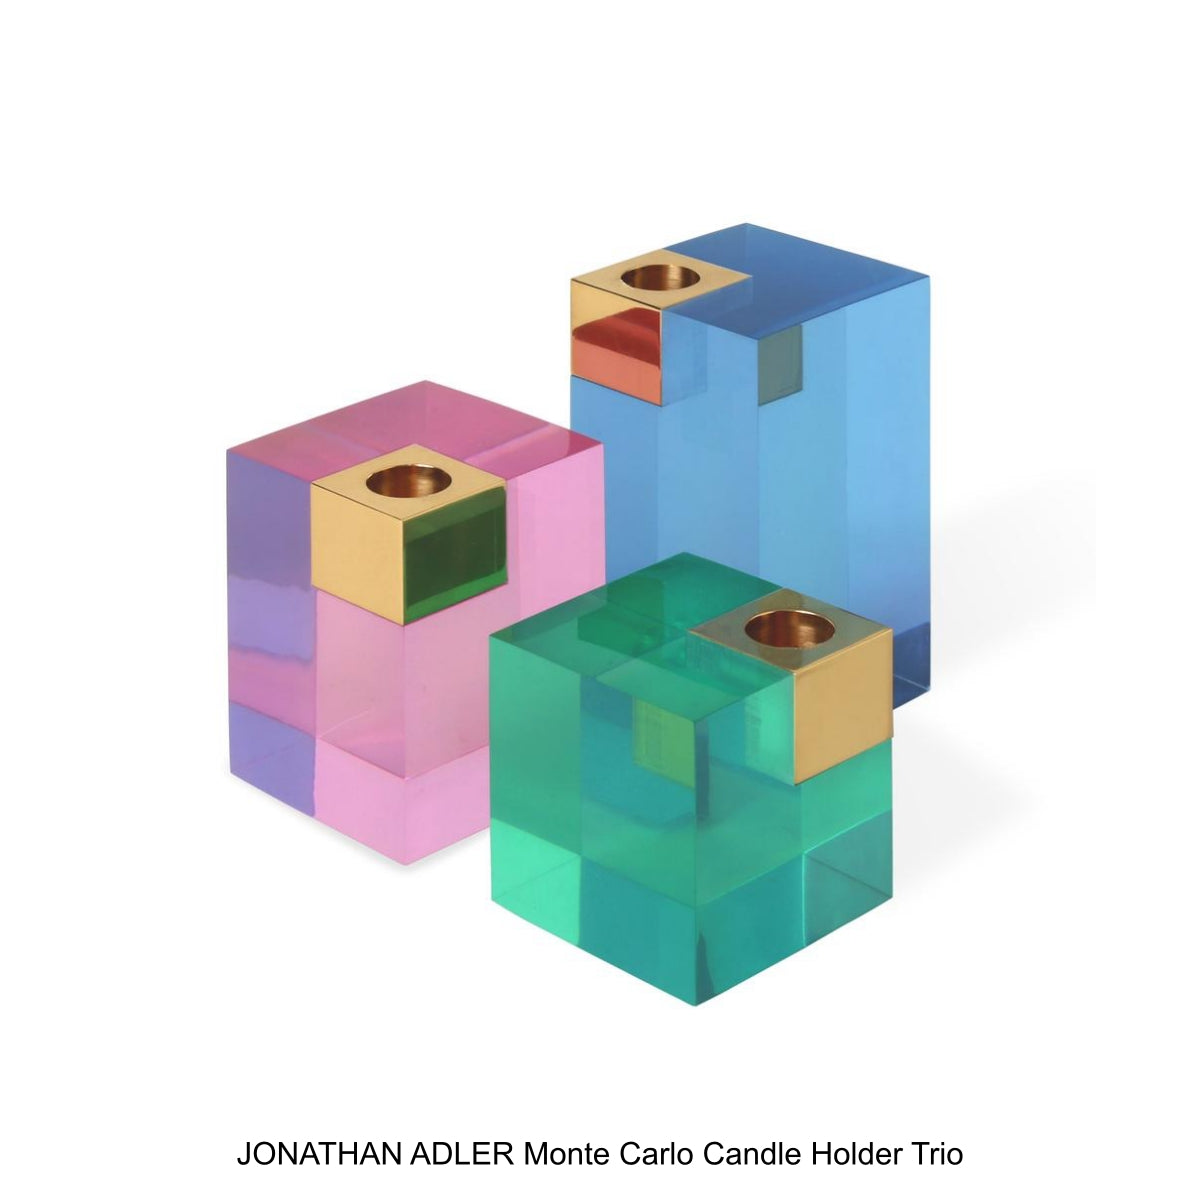 JONATHAN ADLER Monte Carlo Candle Holder Trio